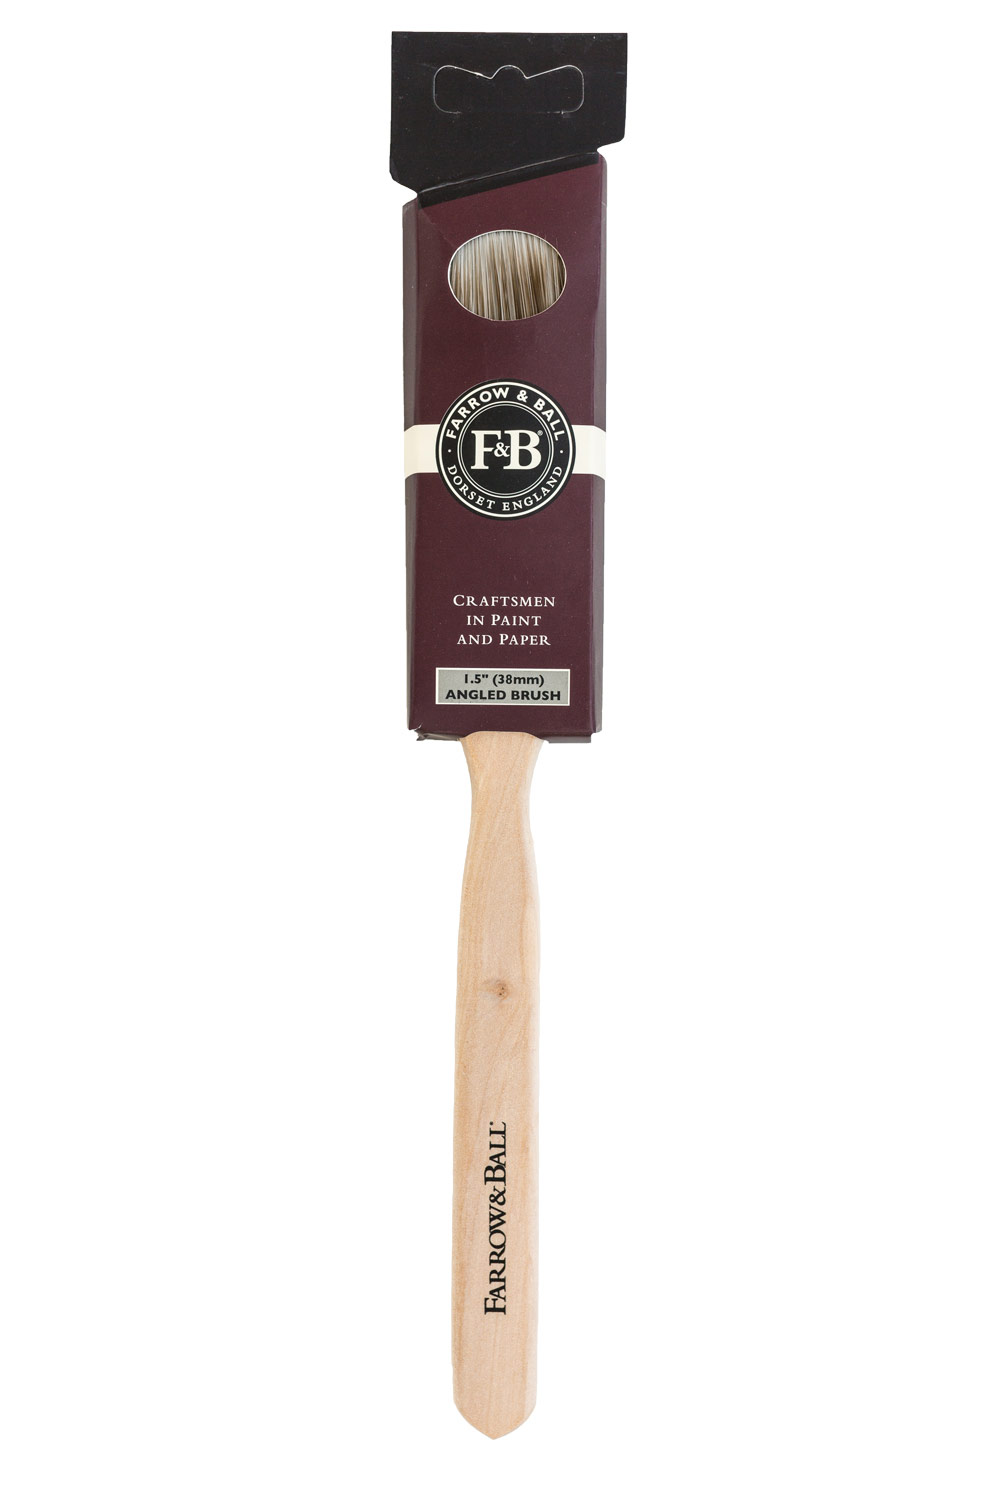 Farrow & Ball 1.5 Inch Angled Brush